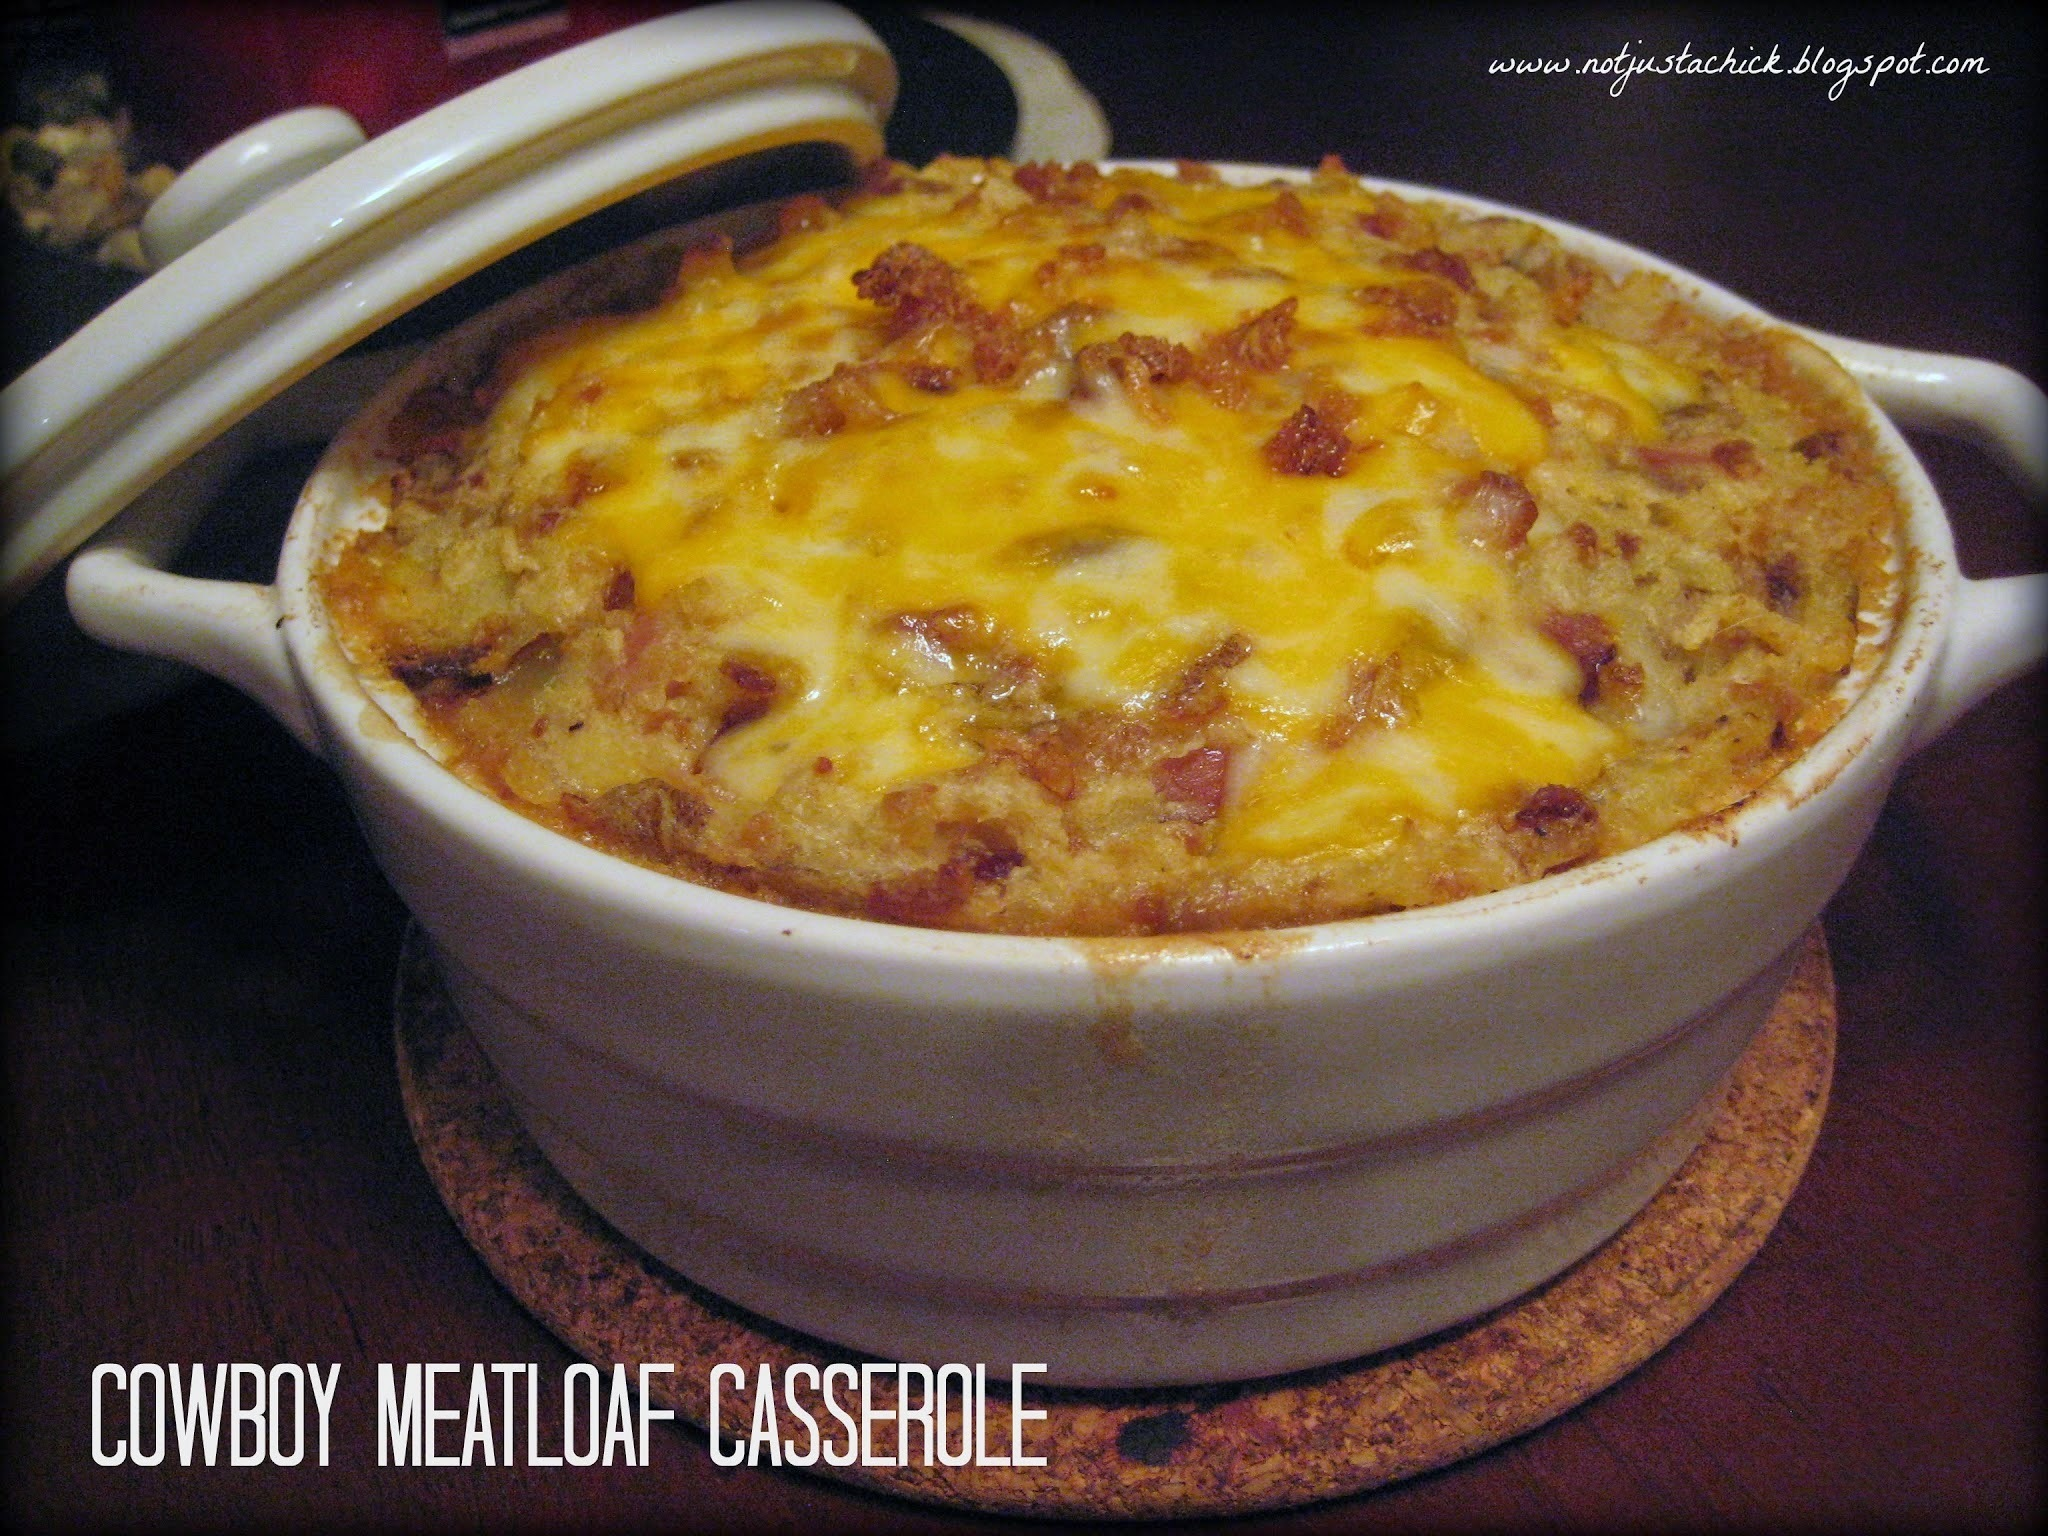 Cowboy Meatloaf Casserole and Introducing.....